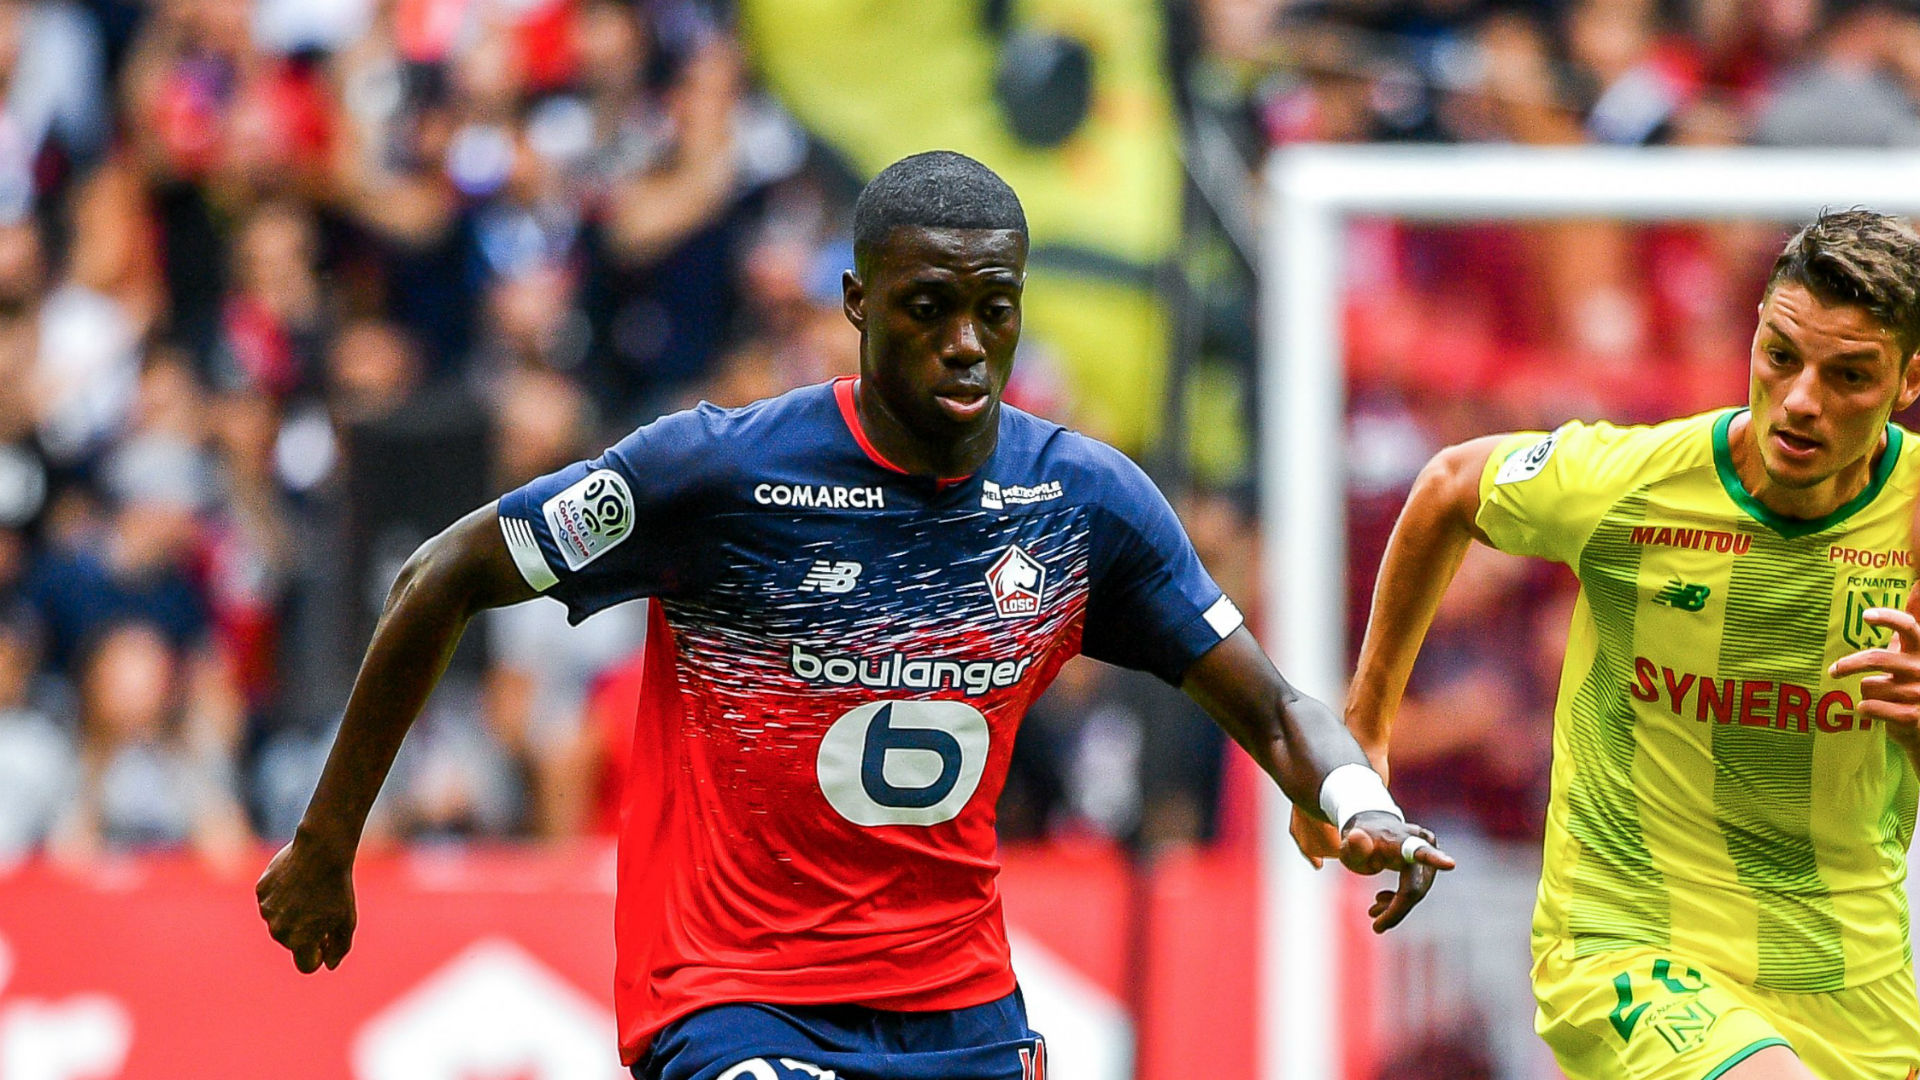 「timothy weah lille」の画像検索結果